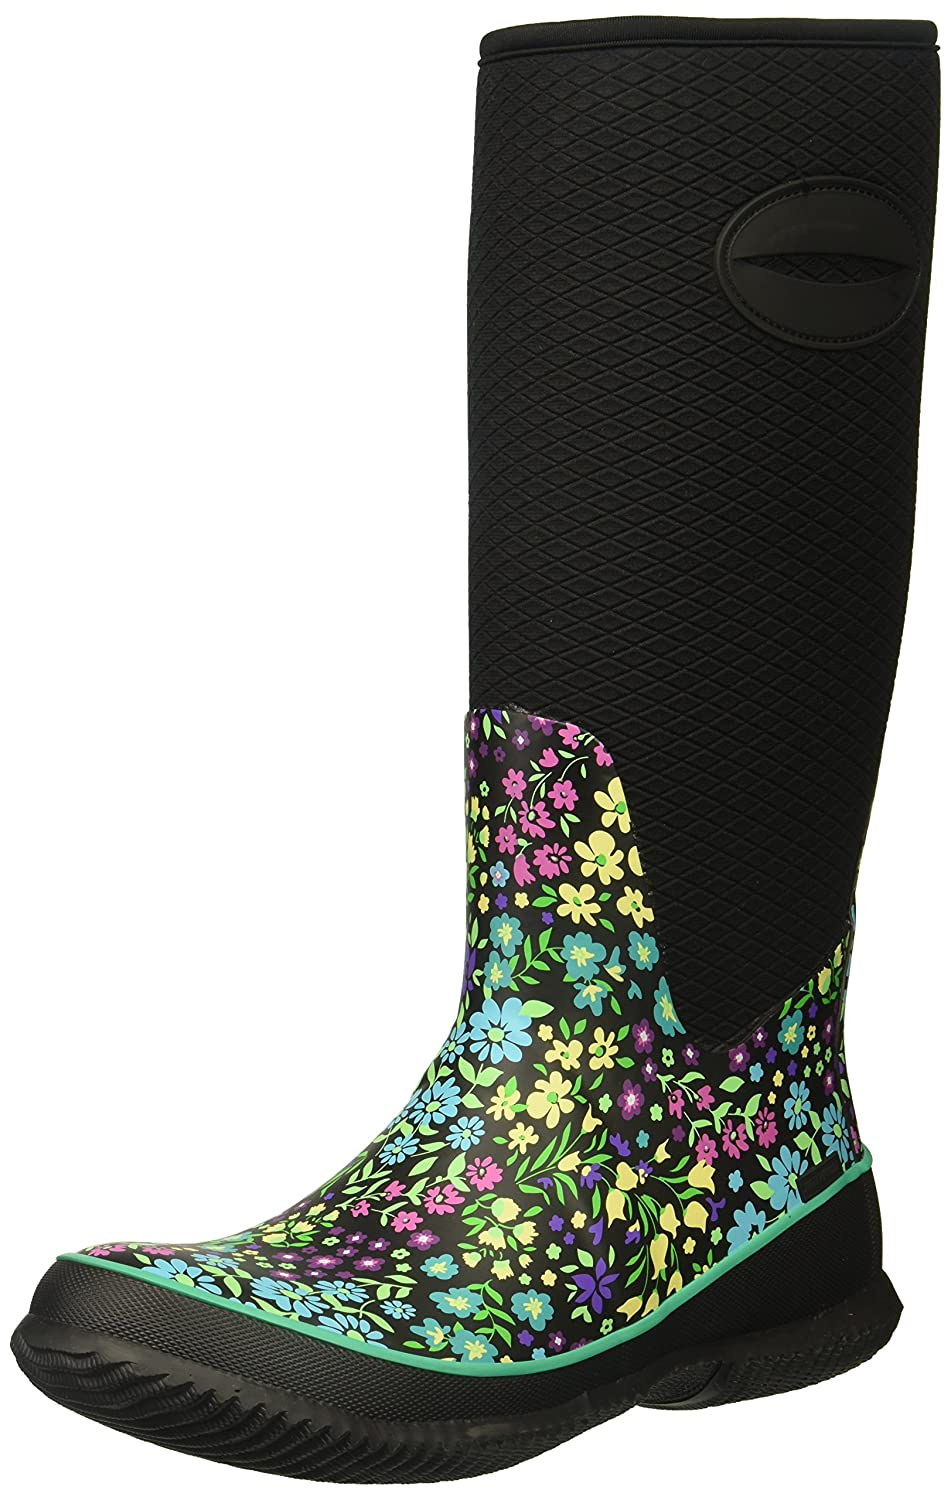 Western Chief Women's Cold Rated Neoprene Memory Foam Snow Boot B01MY8VGG0 11 B(M) US|Blooming Garden